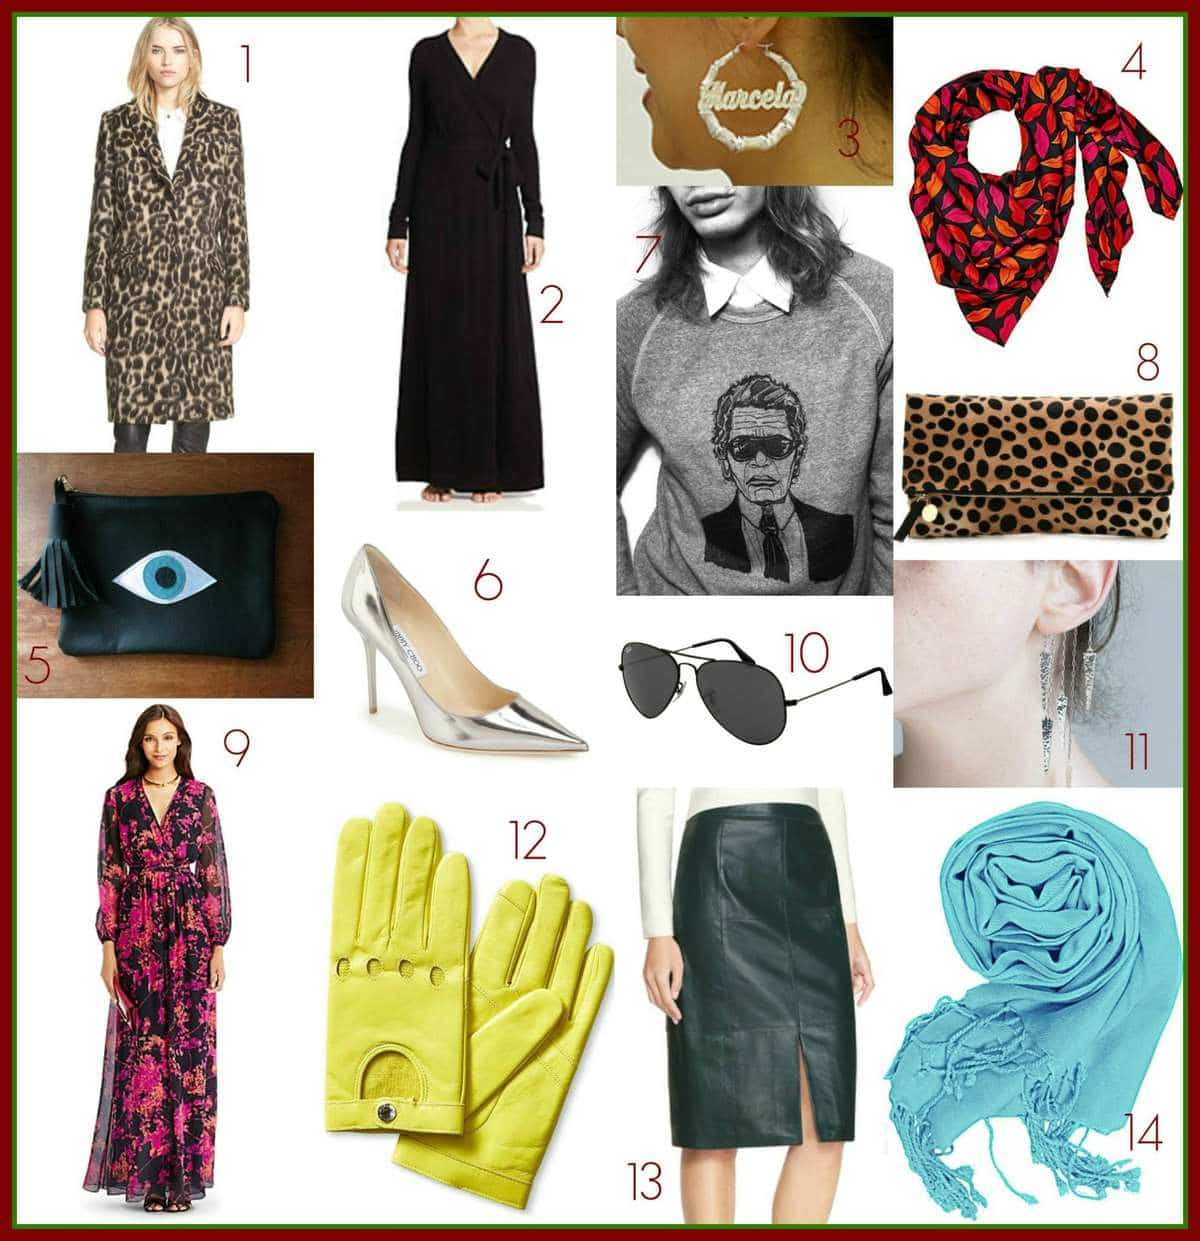 Luxury Gift Guide: Covetable items for gifts where quality trumps quantity